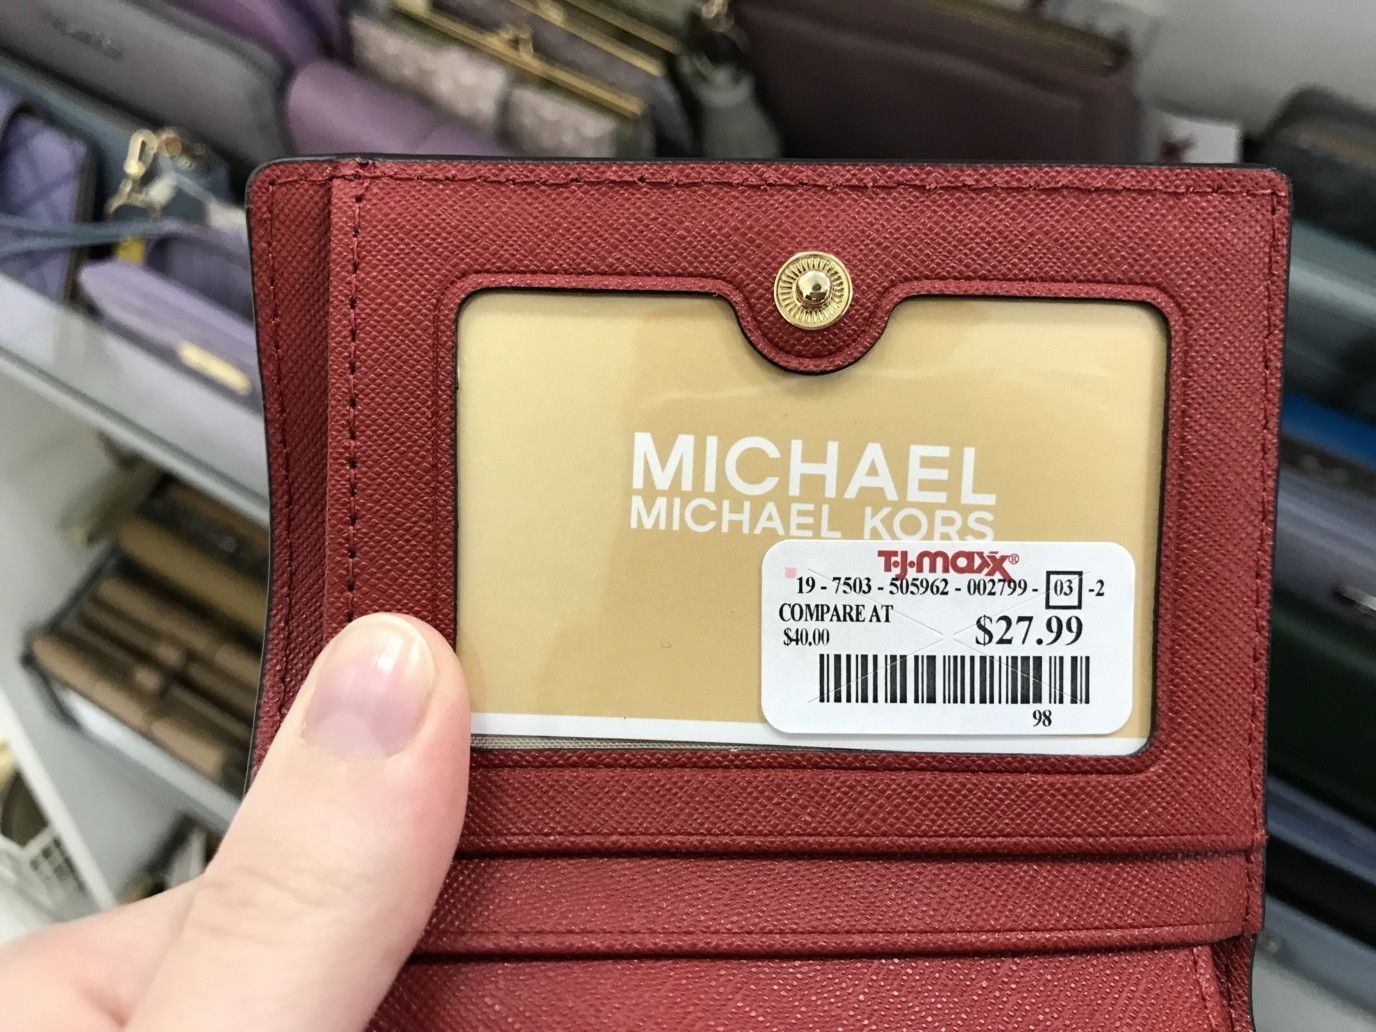 629b249dc7a46c ... The Krazy Coupon Lady. 29 Surprising Name Brands You ll Find at  T.J.Maxx - Want brand names for